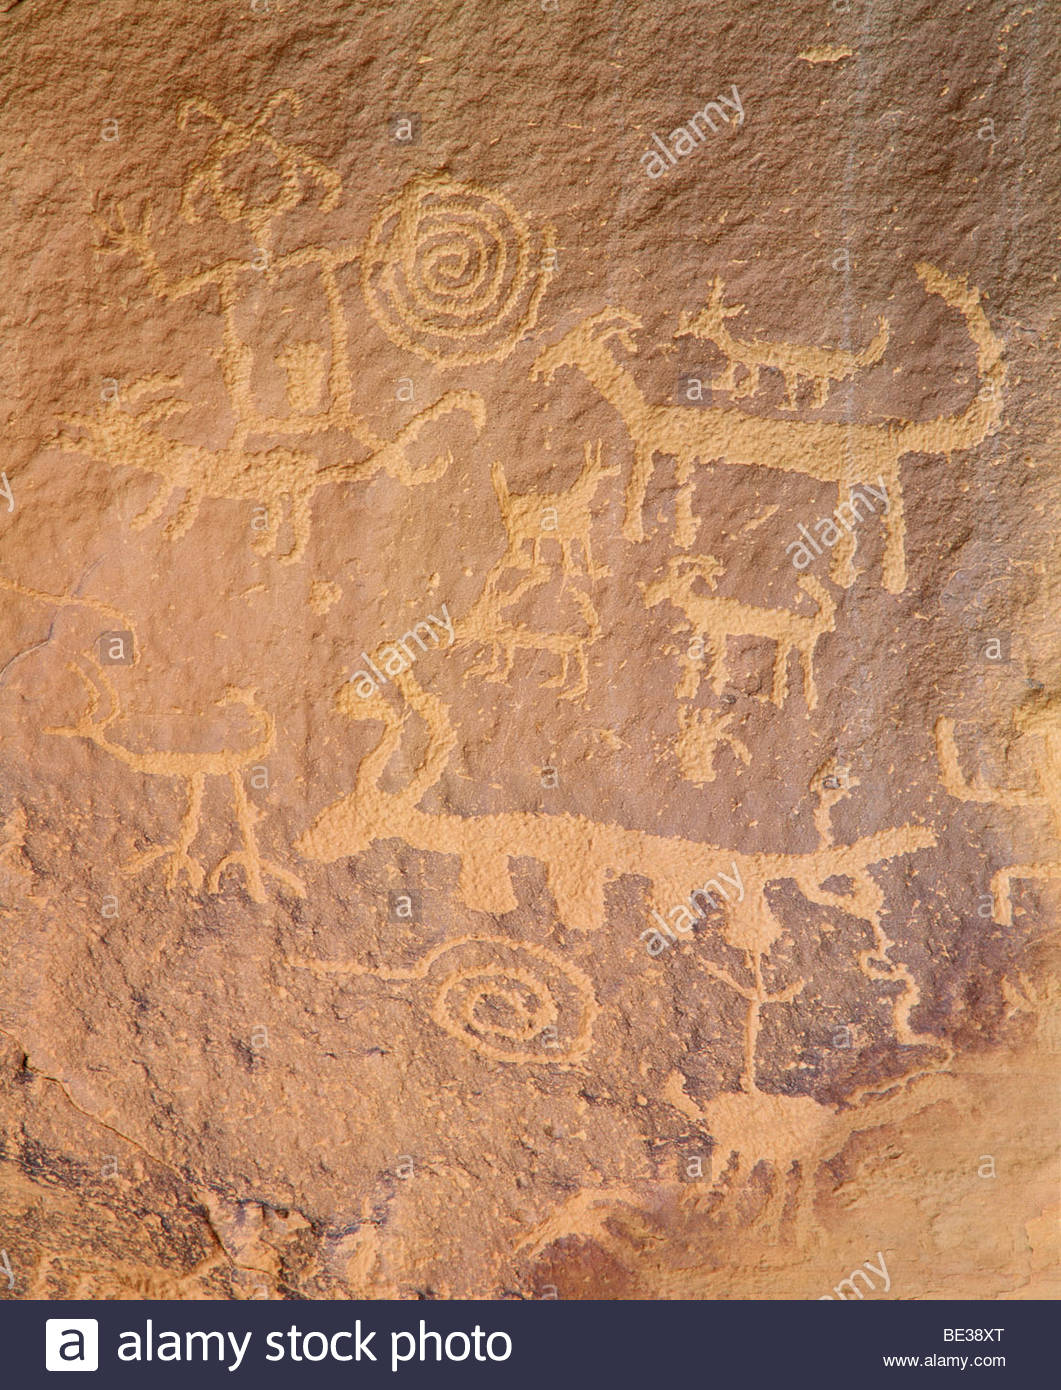 Anasazi culture petroglyphs above the ruins of Una Vida. Chaco Culture National Historical Park, New Mexico. - Stock Image